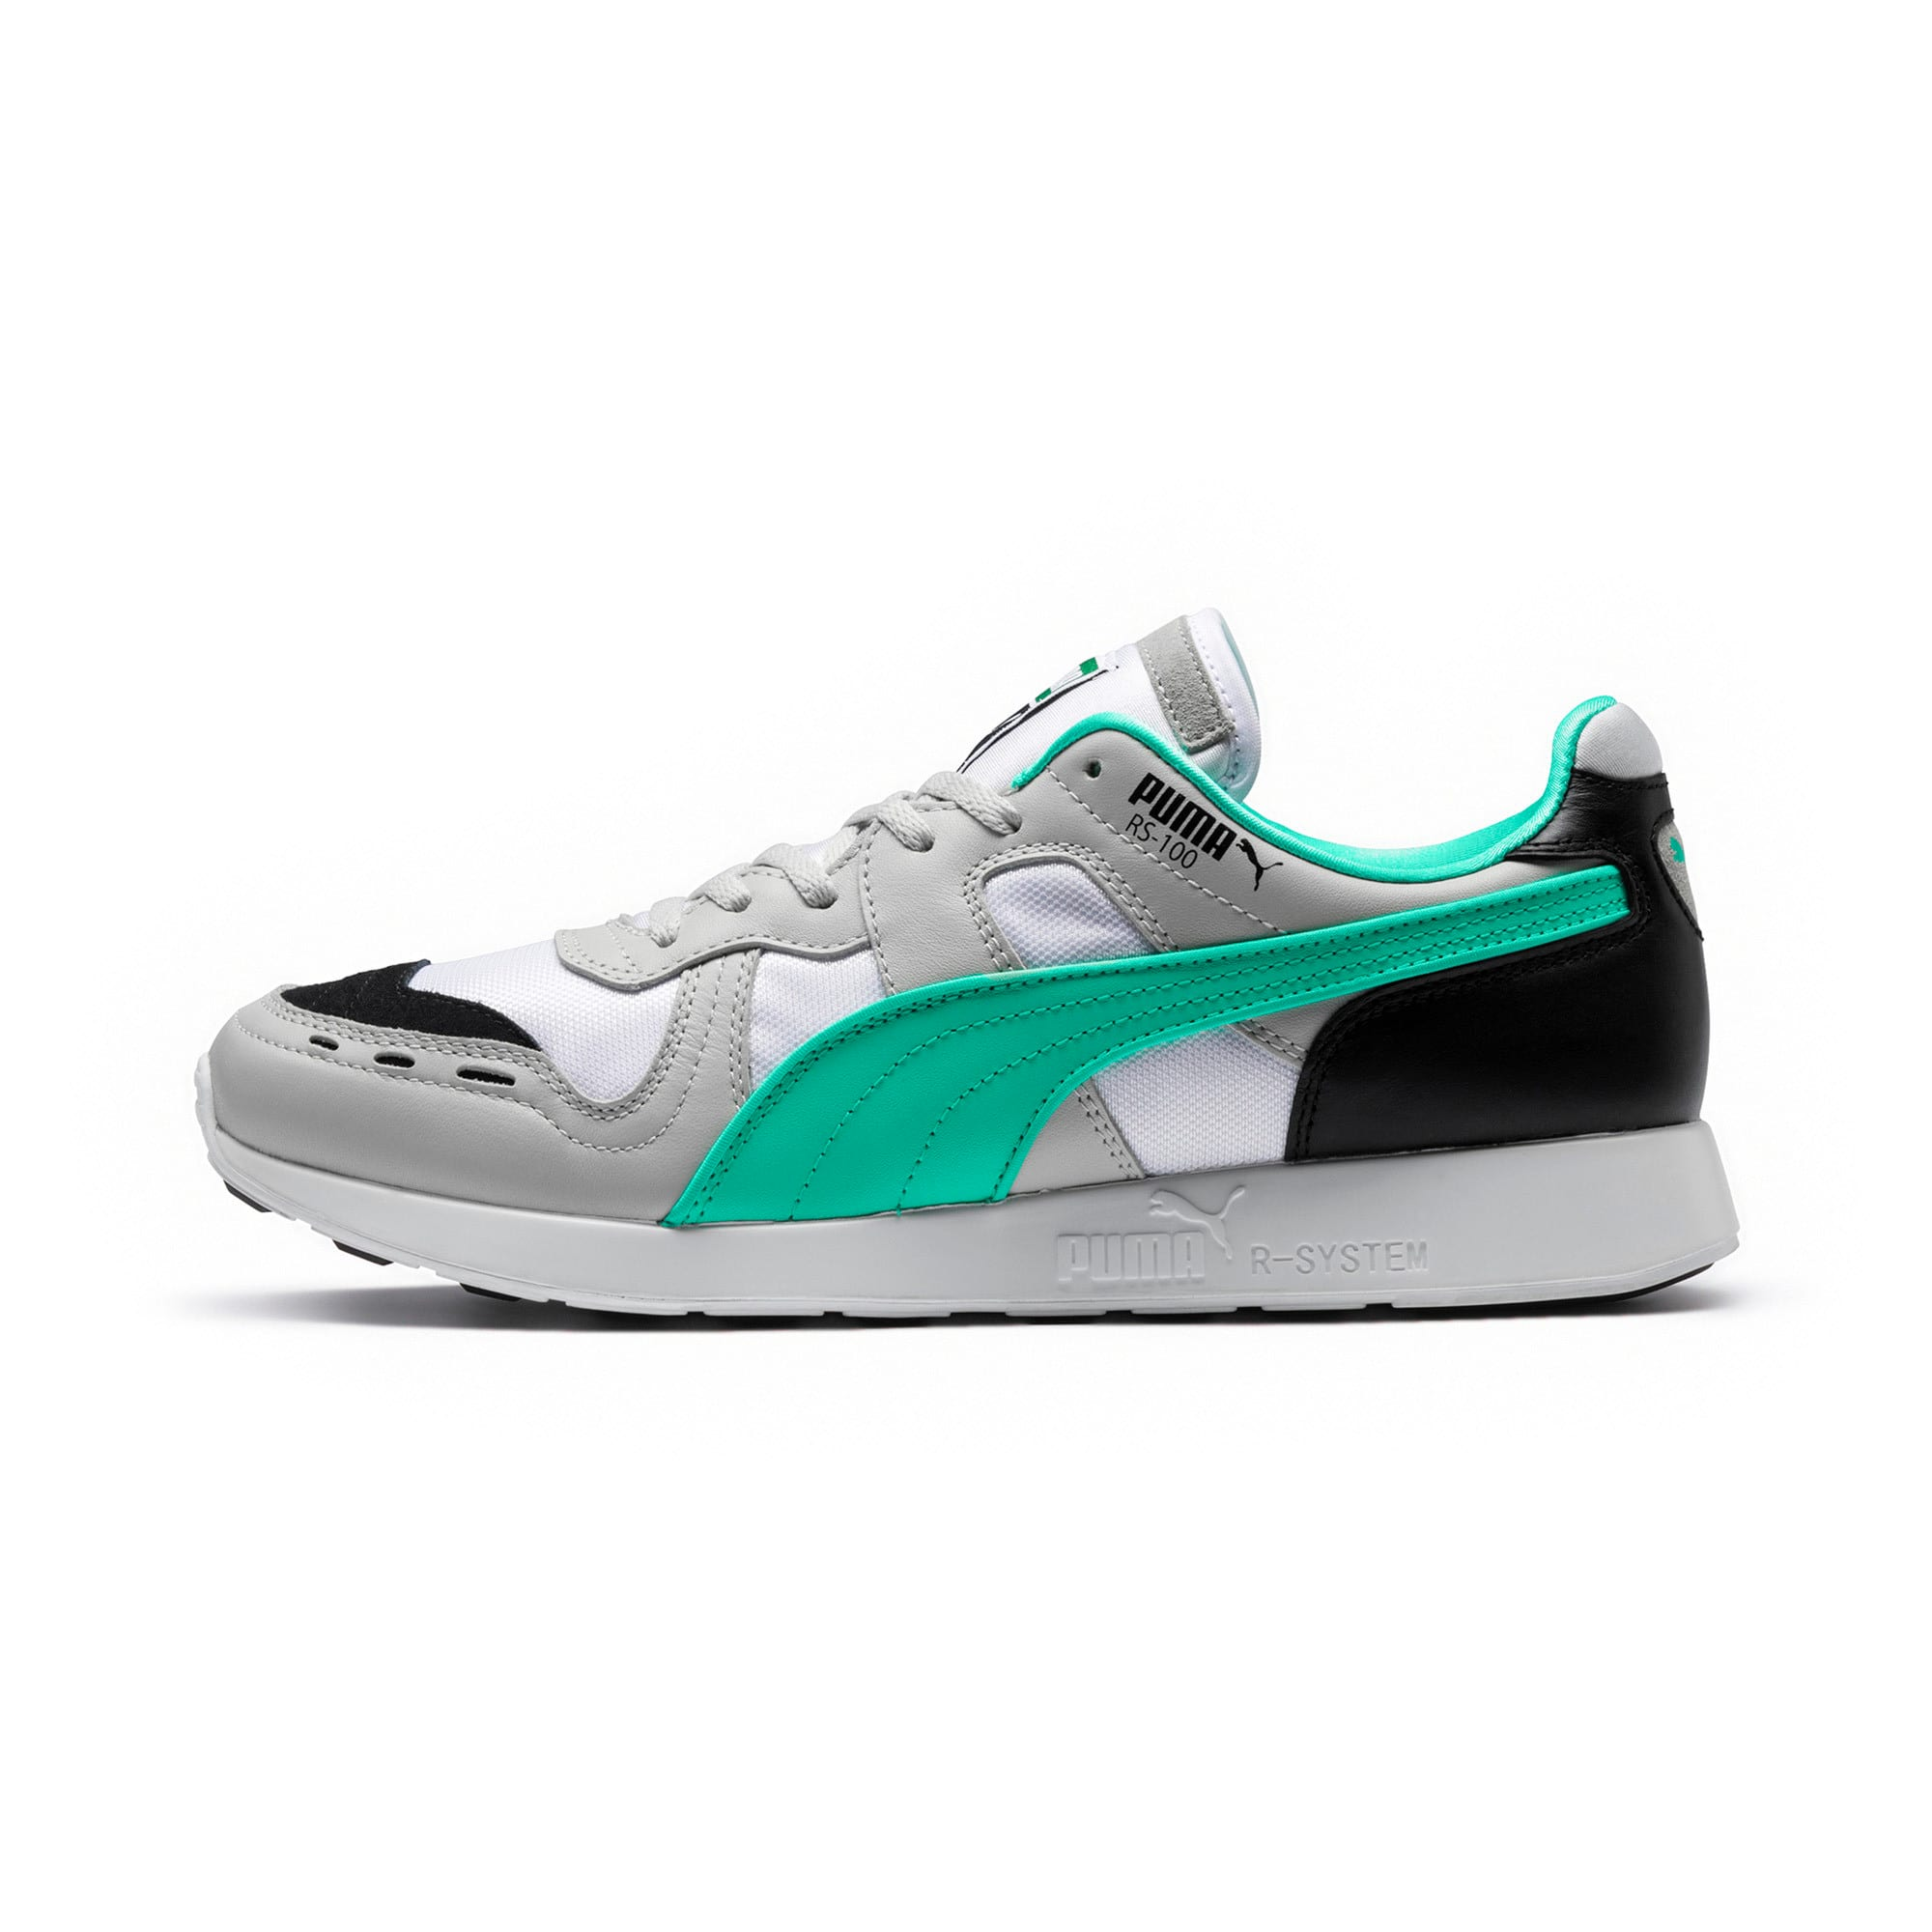 Thumbnail 1 of RS-100 Re-Invention Sneakers, GrayViolet-BiscayGreen-White, medium